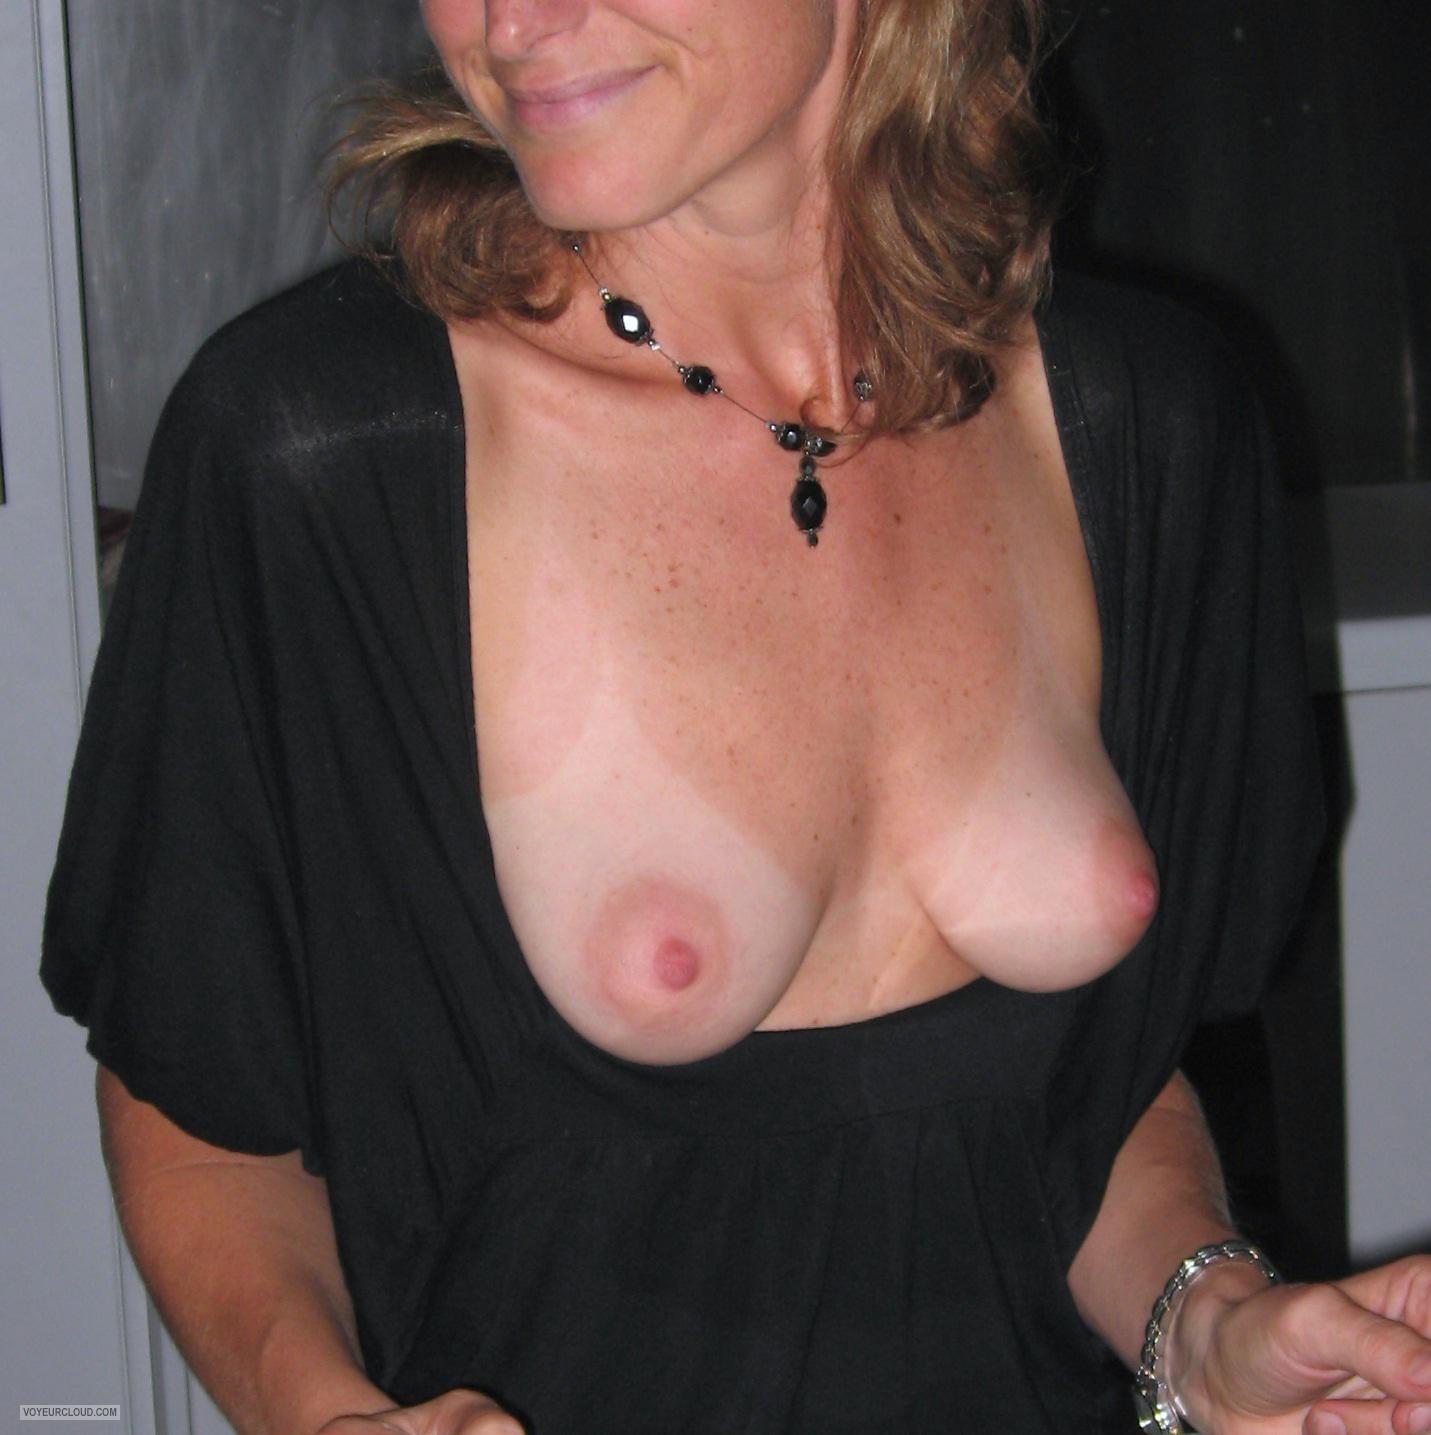 Tit Flash: Ex-Girlfriend's Tanlined Small Tits - Jenny from Australia